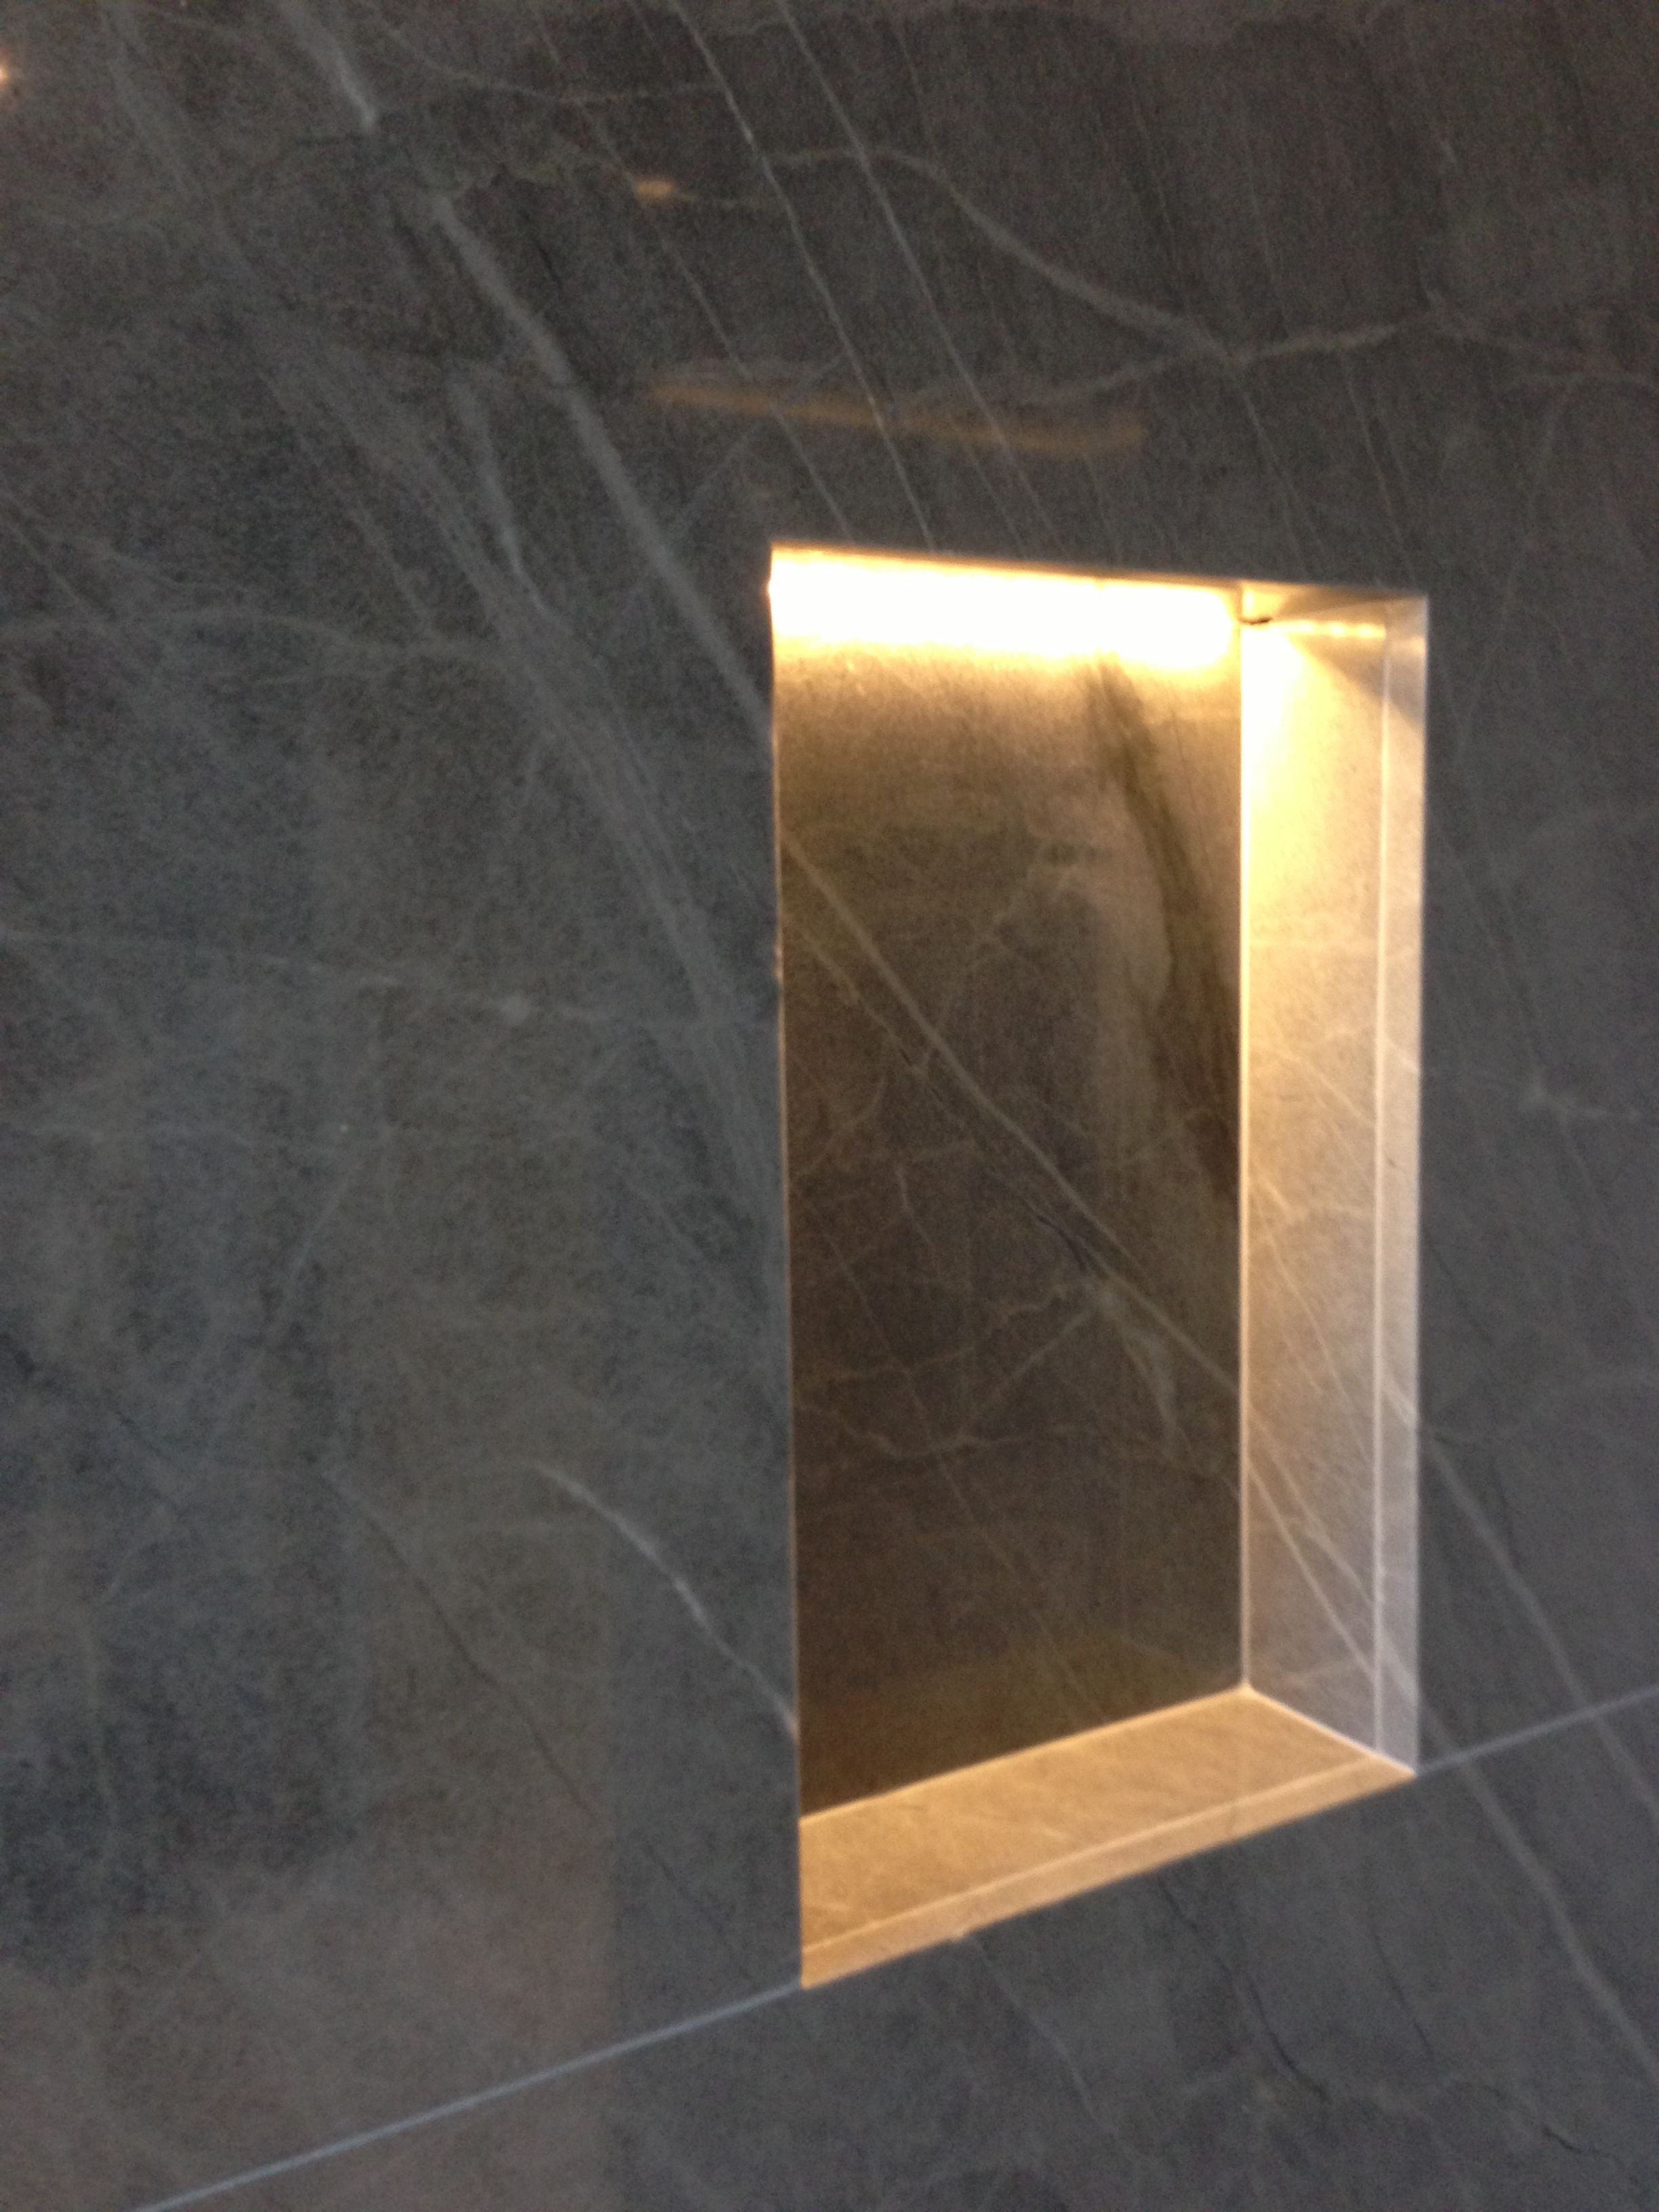 Recessed shower lighting bathroom ideas pinterest recessed recessed shower lighting mozeypictures Image collections